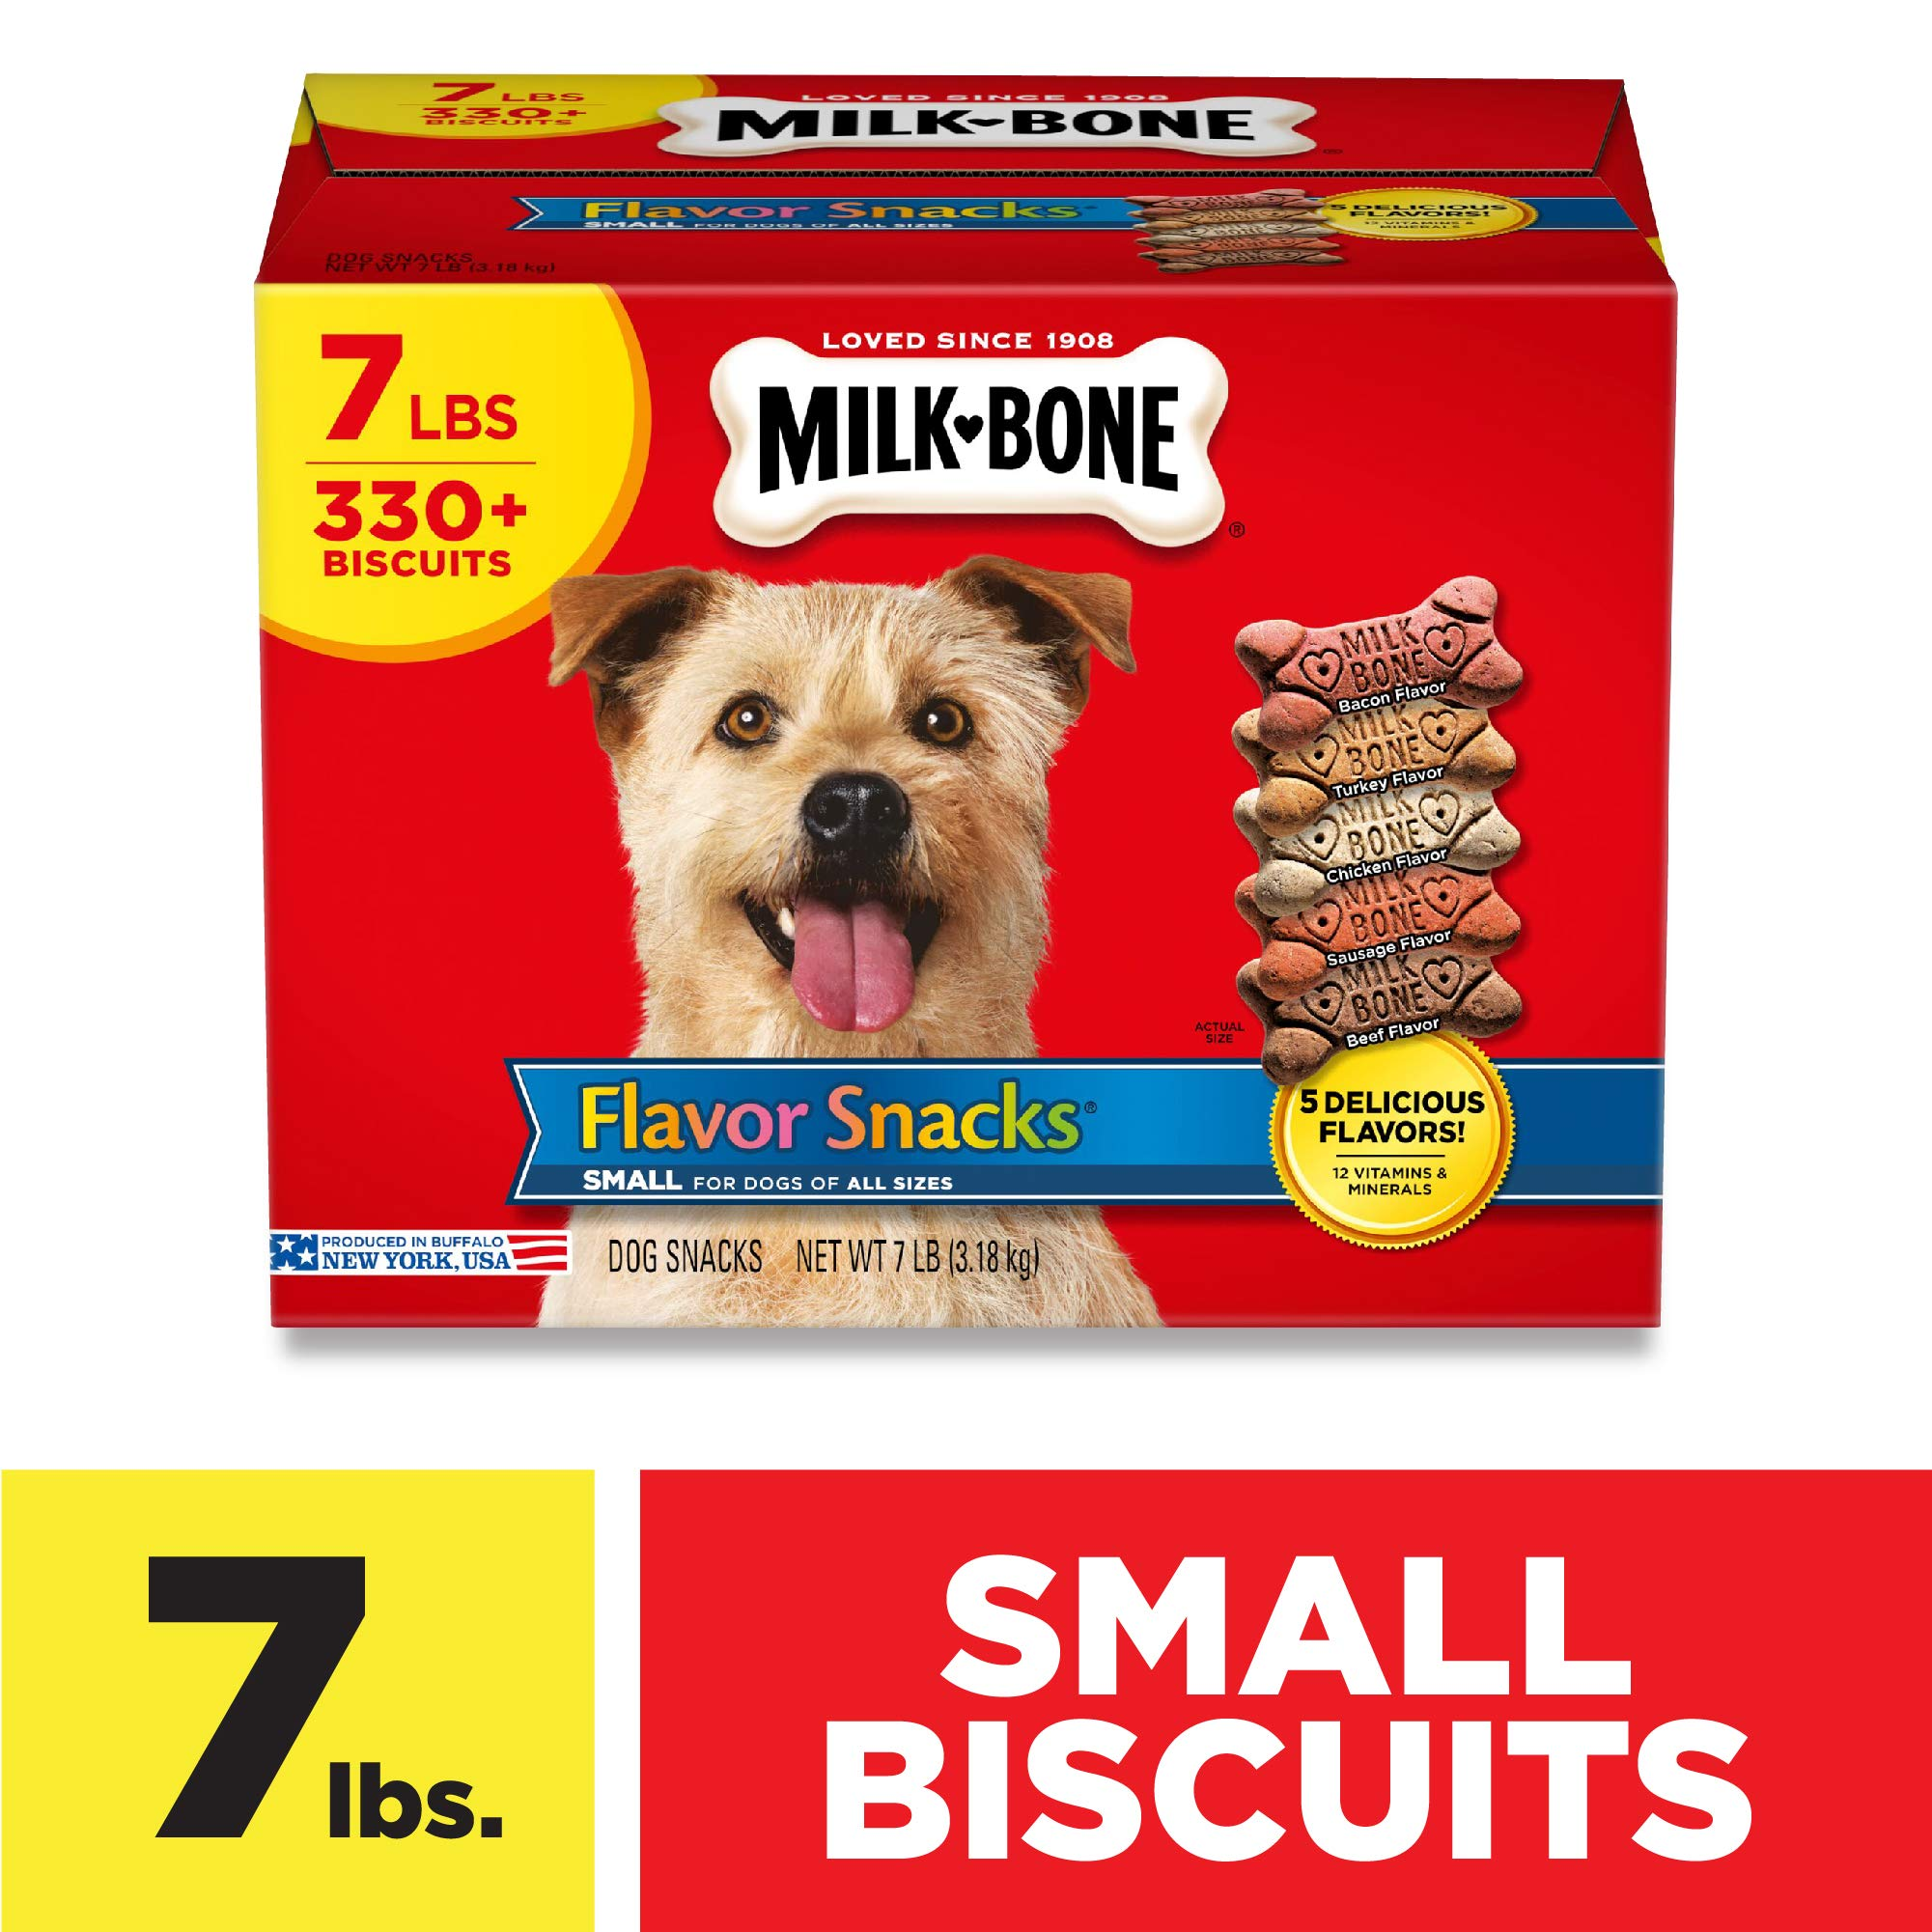 Milk-Bone Flavor Snacks Dog Treats for Dogs of All Sizes